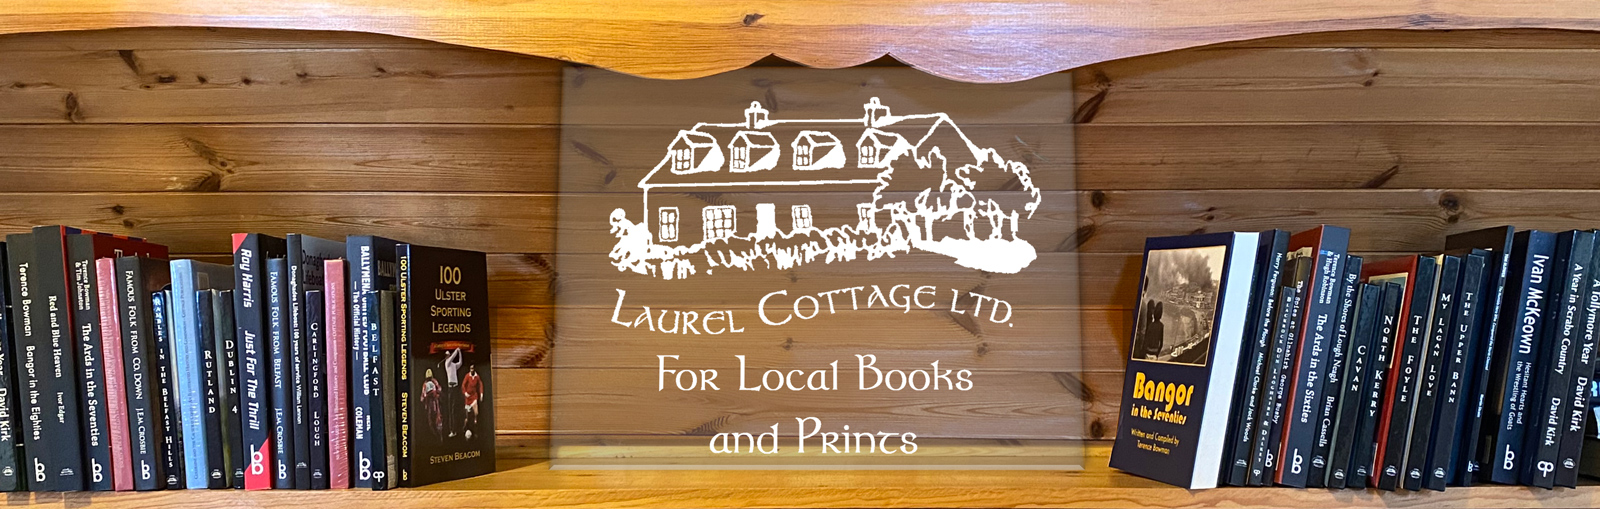 Laurel Cottage home of Cottage publications and Ballyhay books